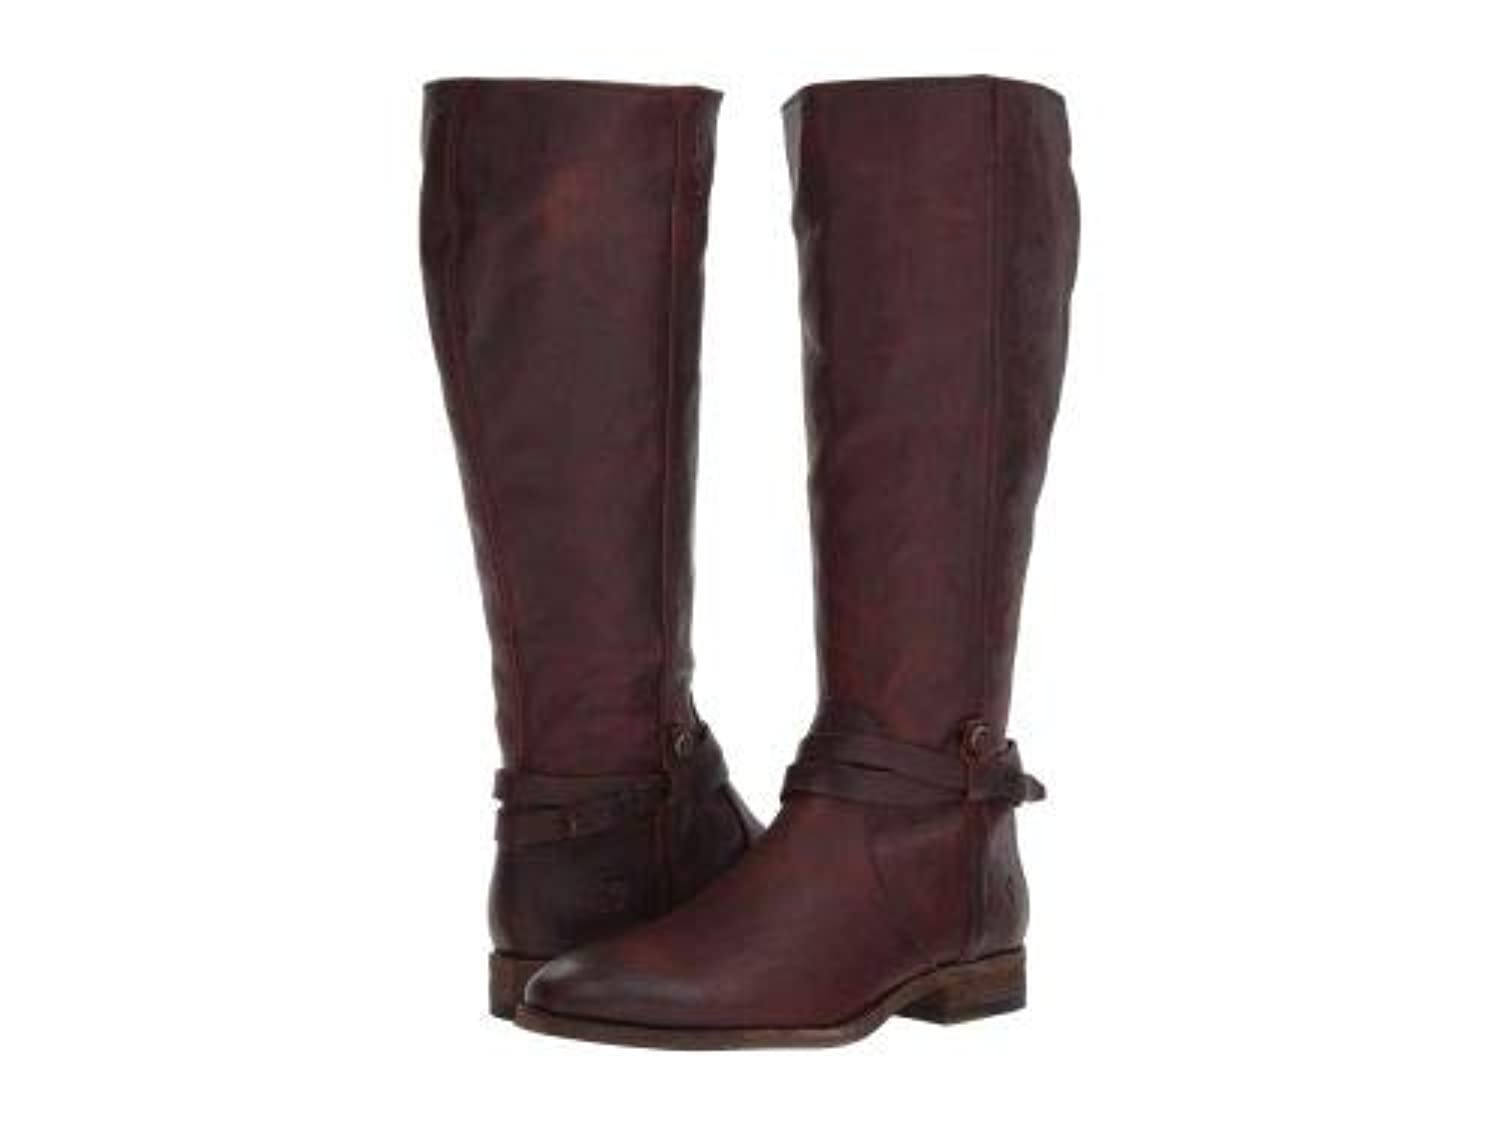 Frye(フライ) レディース 女性用 シューズ 靴 ブーツ ロングブーツ Melissa Belted Tall - Redwood Extended Washed Oiled Vintage [並行輸入品]